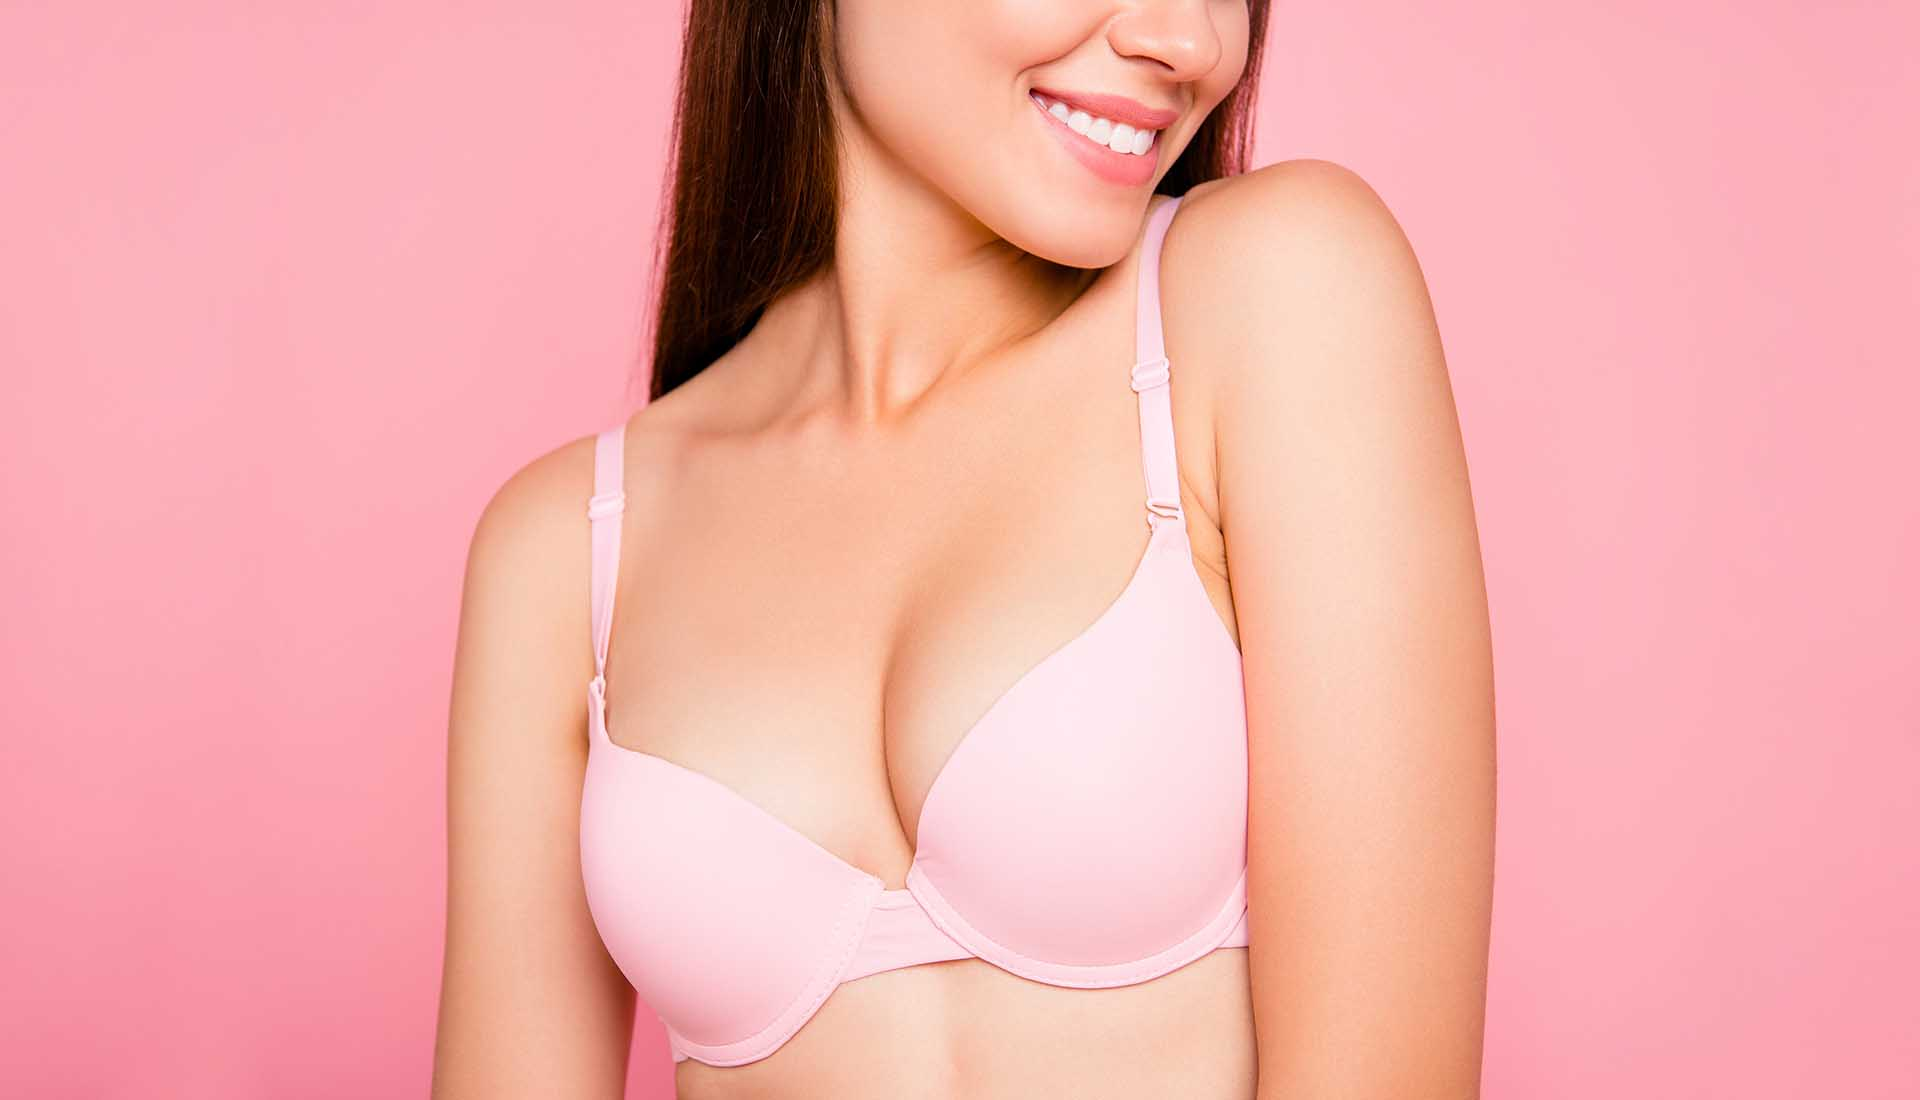 Beautiful woman wearing pink bra.